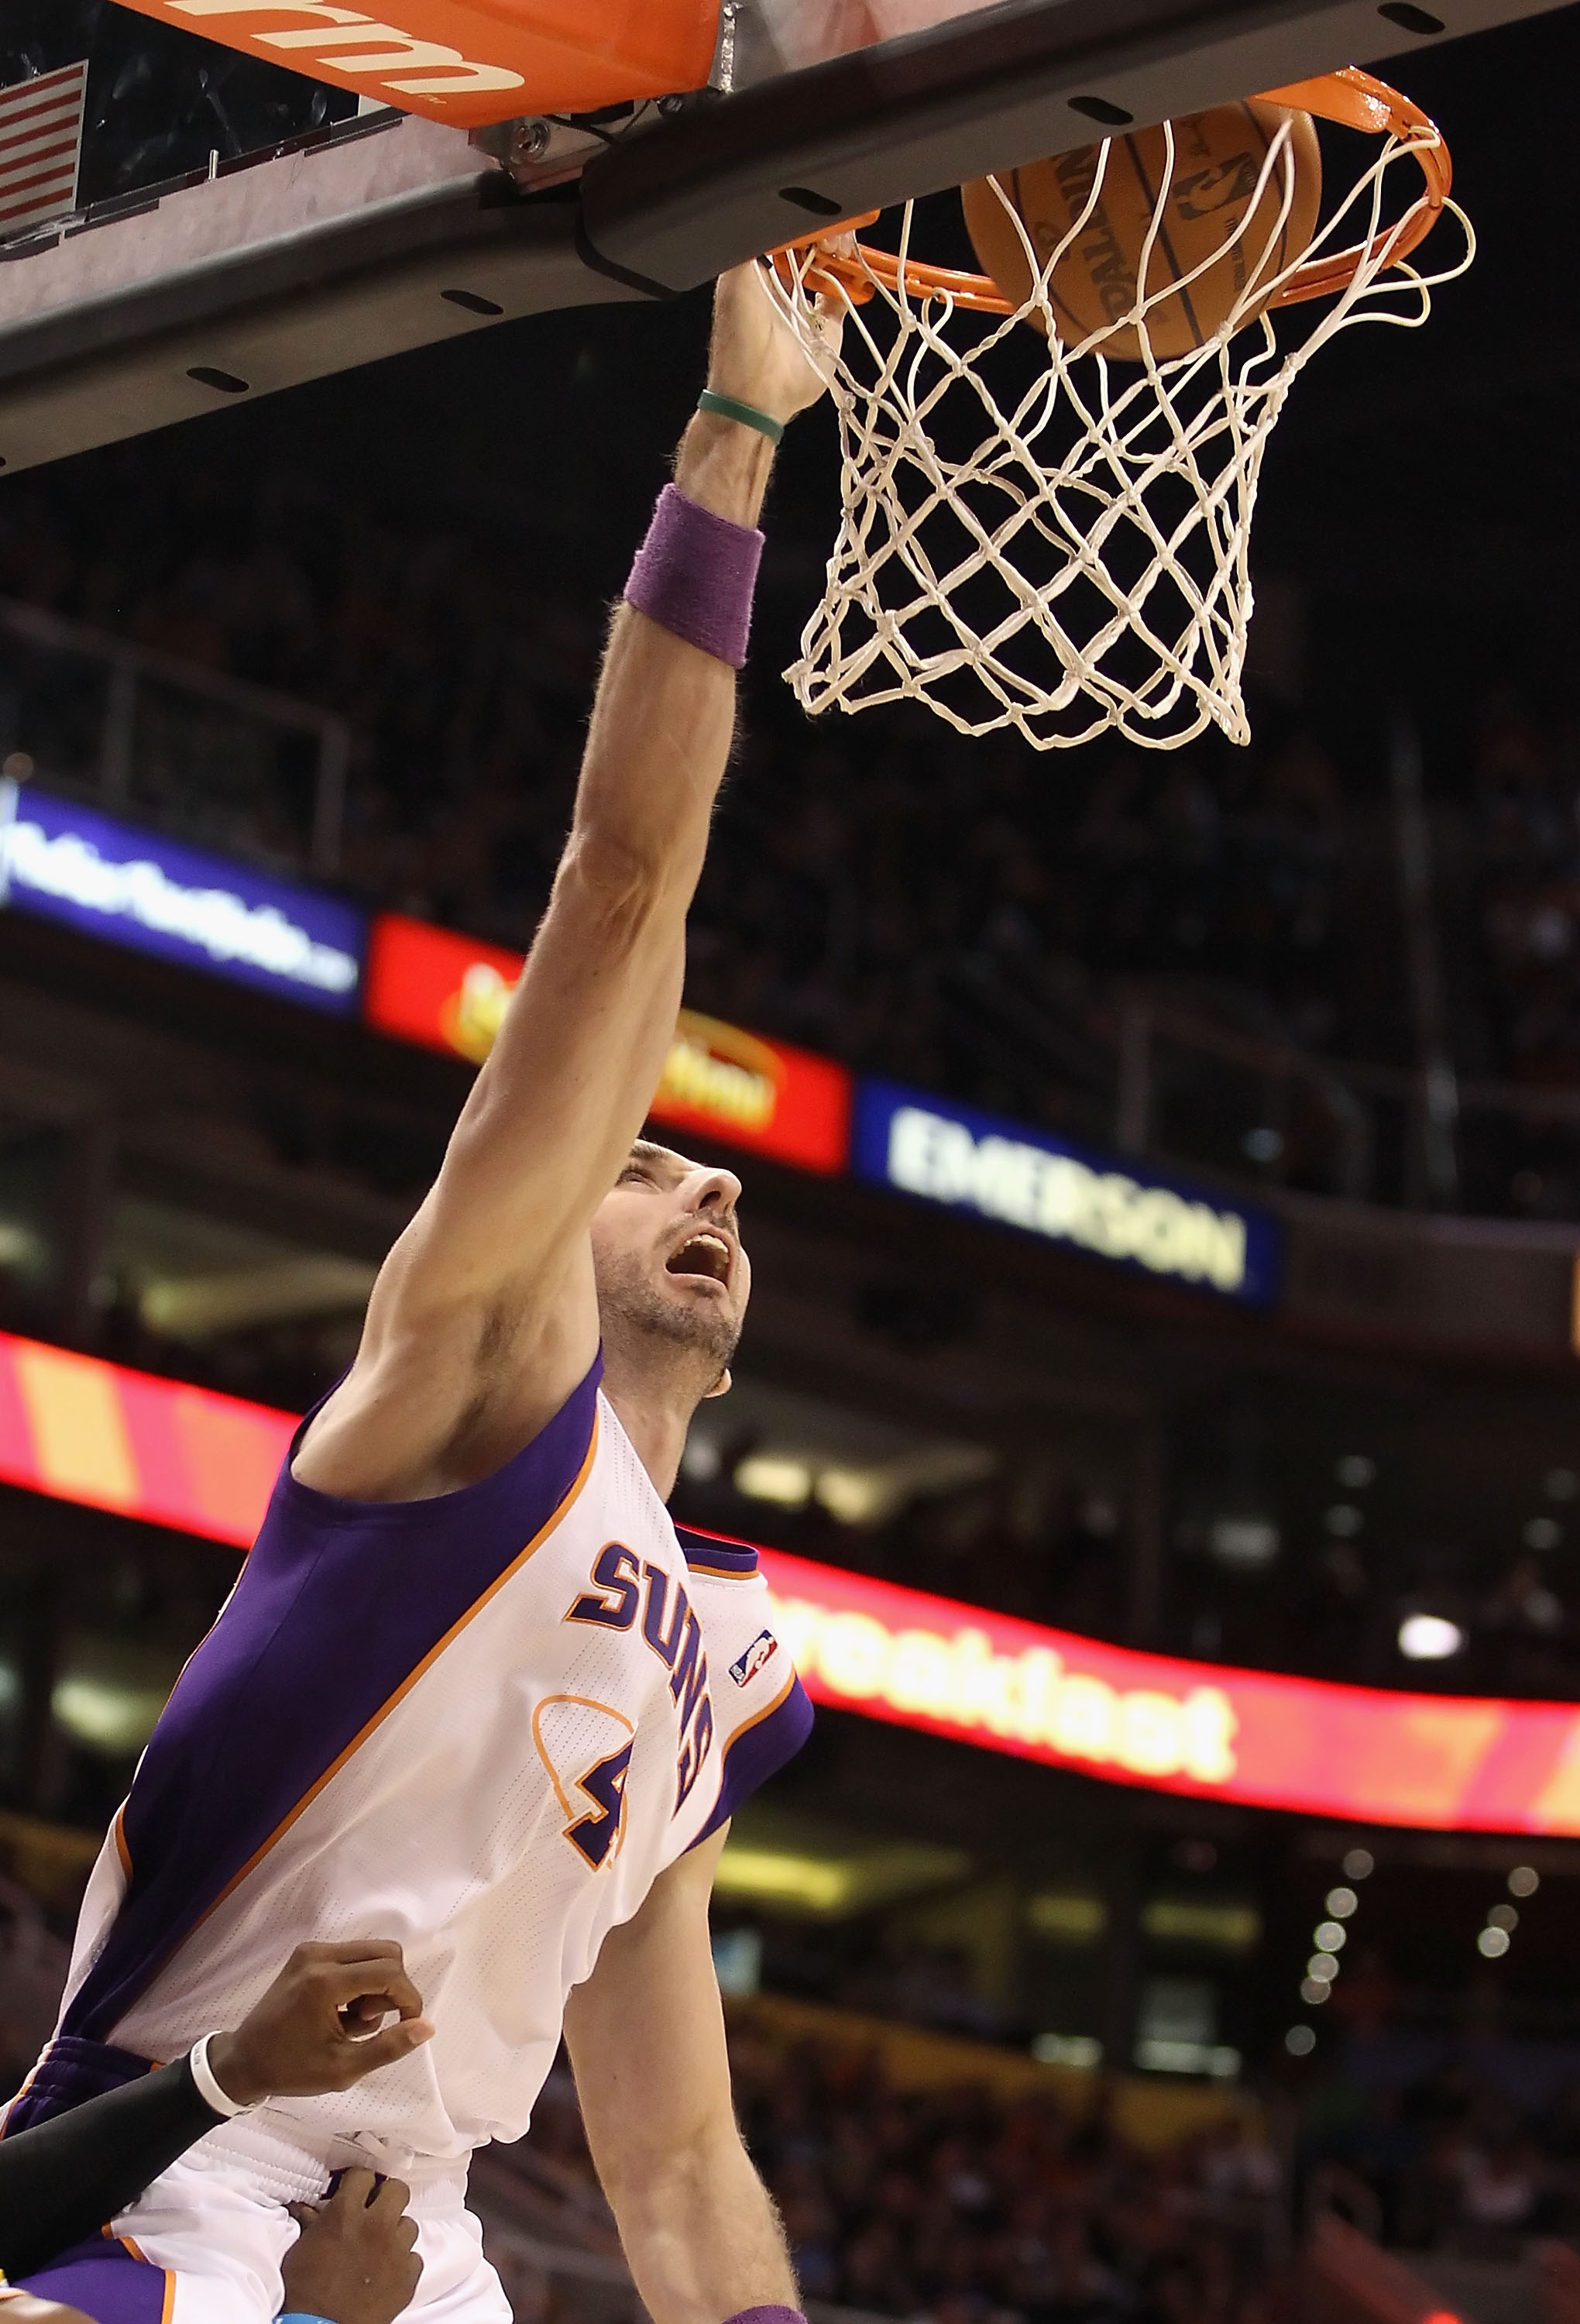 PHOENIX, AZ - JANUARY 30:  Marcin Gortat #4 of the Phoenix Suns slam dunks the ball against the New Orleans Hornets during the NBA game at US Airways Center on January 30, 2011 in Phoenix, Arizona.  The Suns defeated the Hornets 104-102. NOTE TO USER: Use